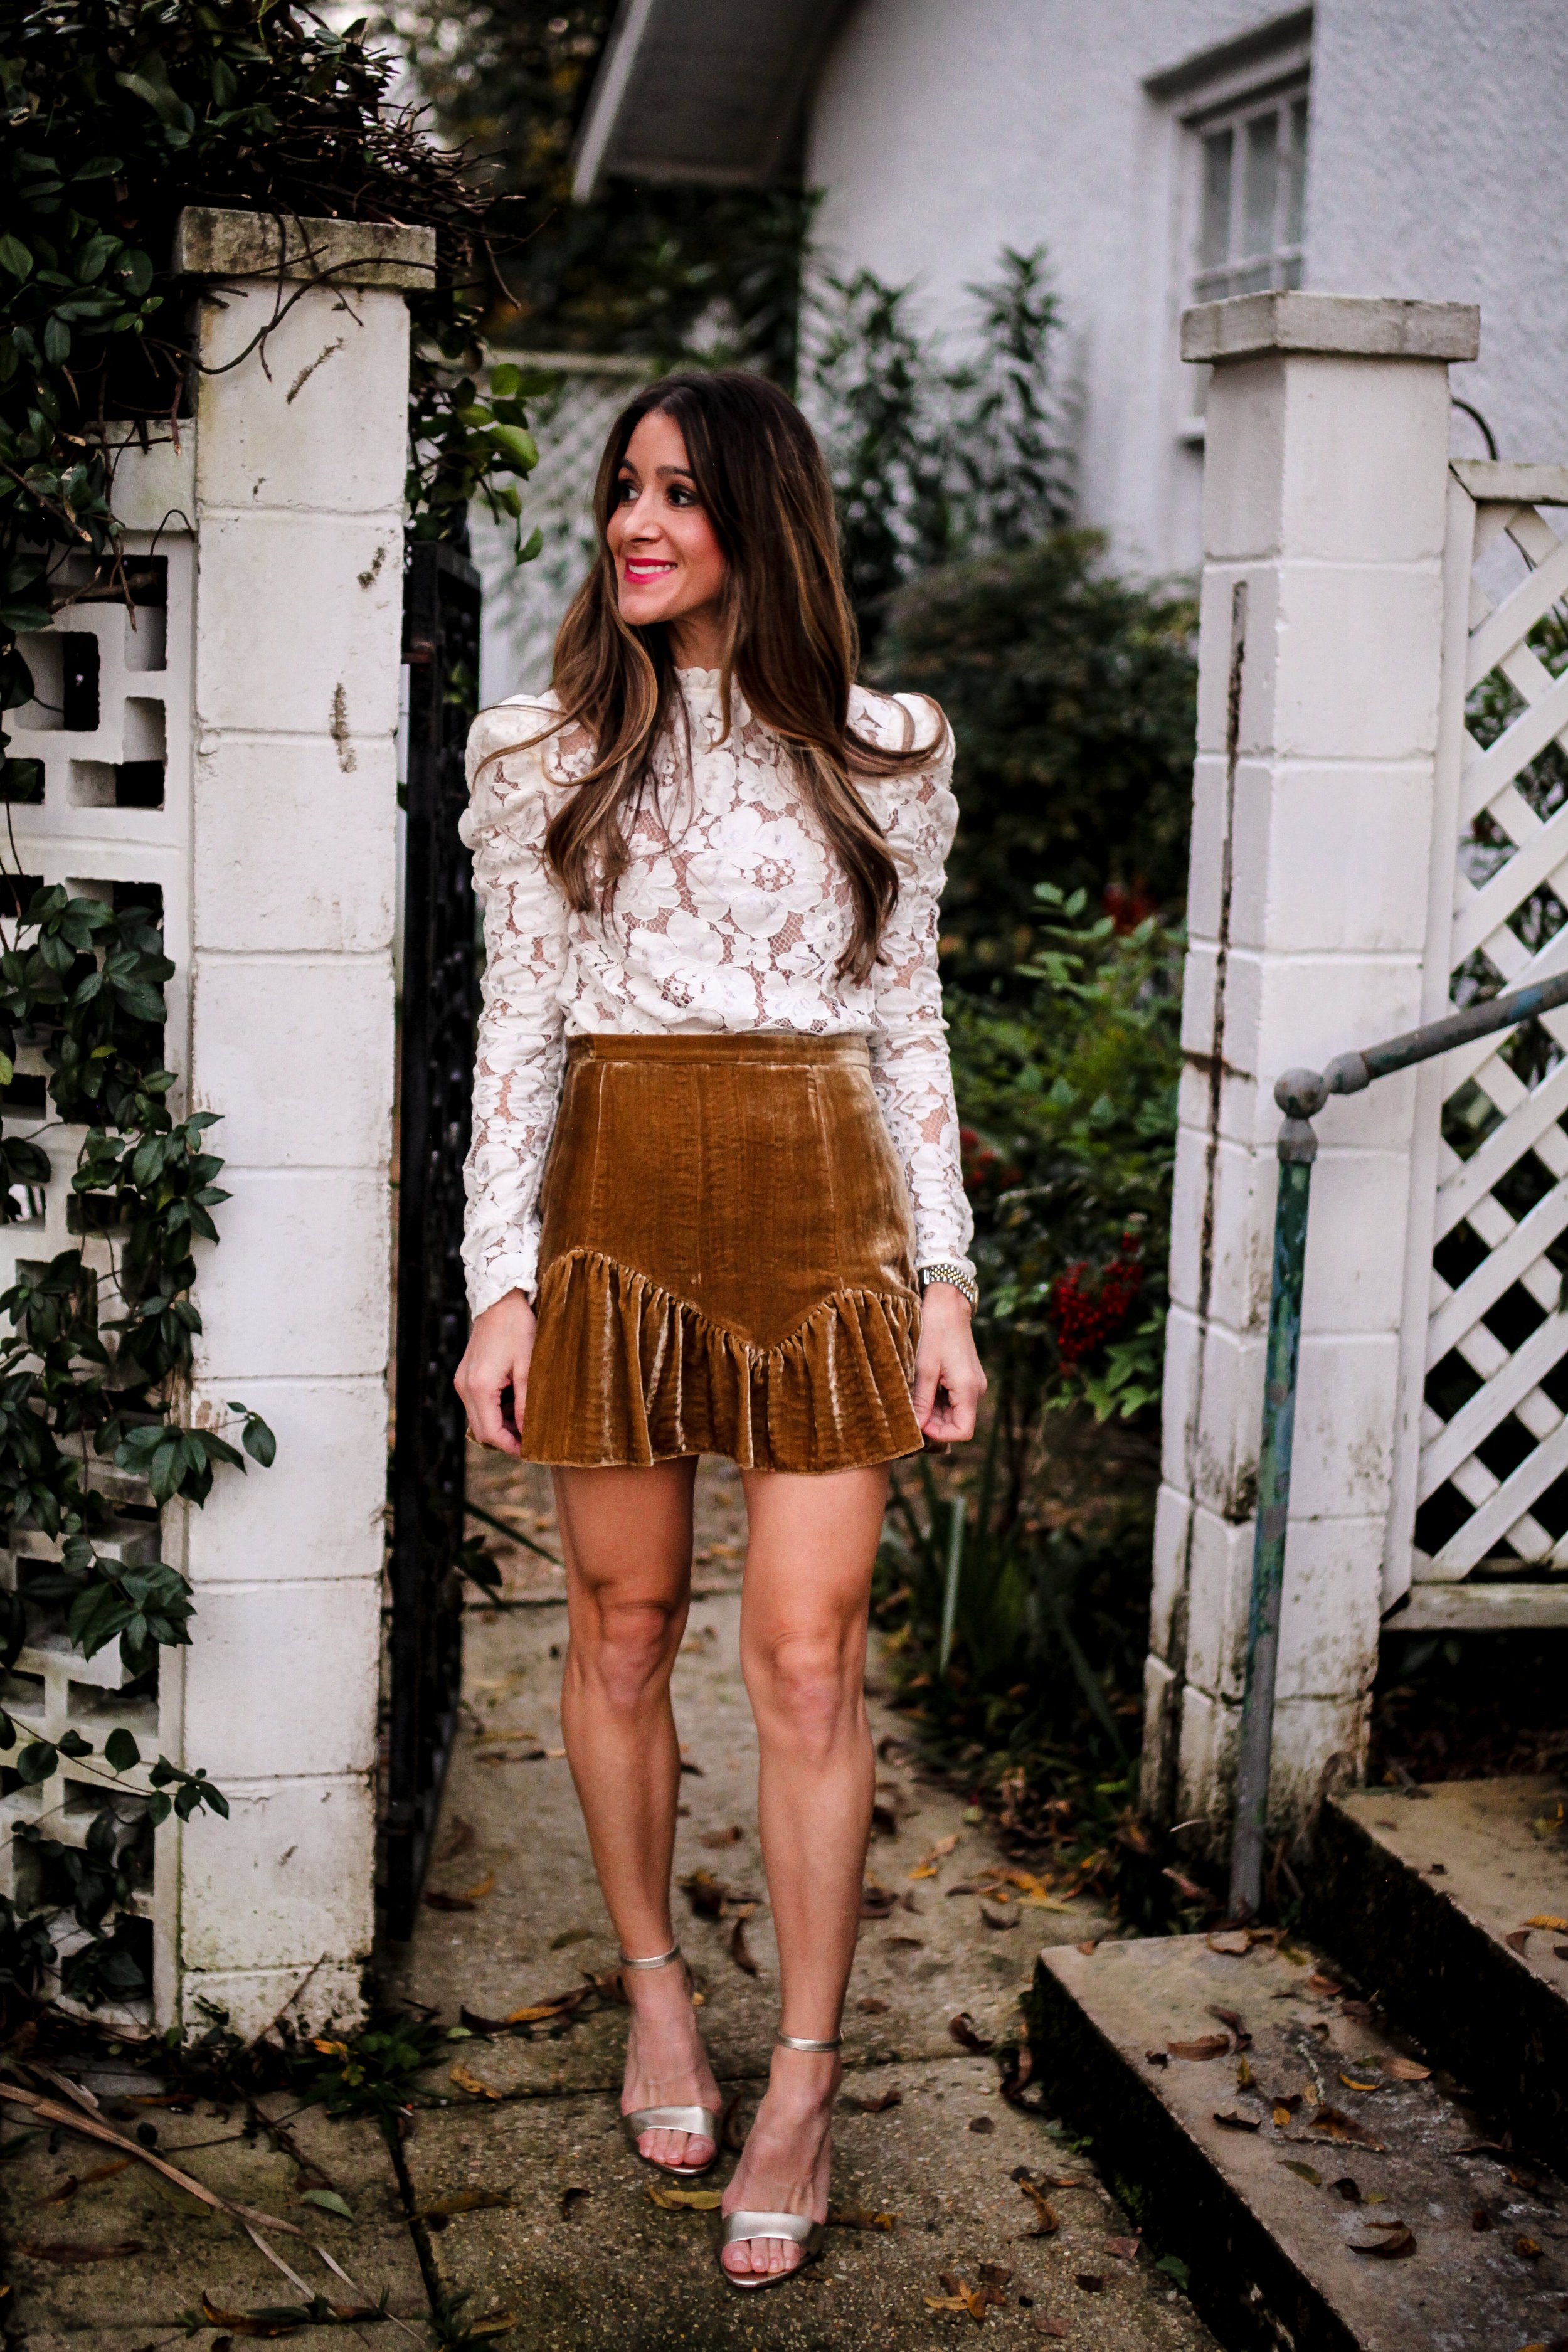 LACE TOP - WAYF -  HERE  | VELVET SKIRT - LOVE SHACK FANCY - ON SALE  HERE  AND HERE | GOLD STRAPPY HEELS - SAM EDELMAN -  HERE  AND HERE | EARRINGS - HERE - HERE | LIPSTICK - CHARLOTTE TILBURY -  HERE  | BLUSH - CHARLOTTE TILBURY -  HERE